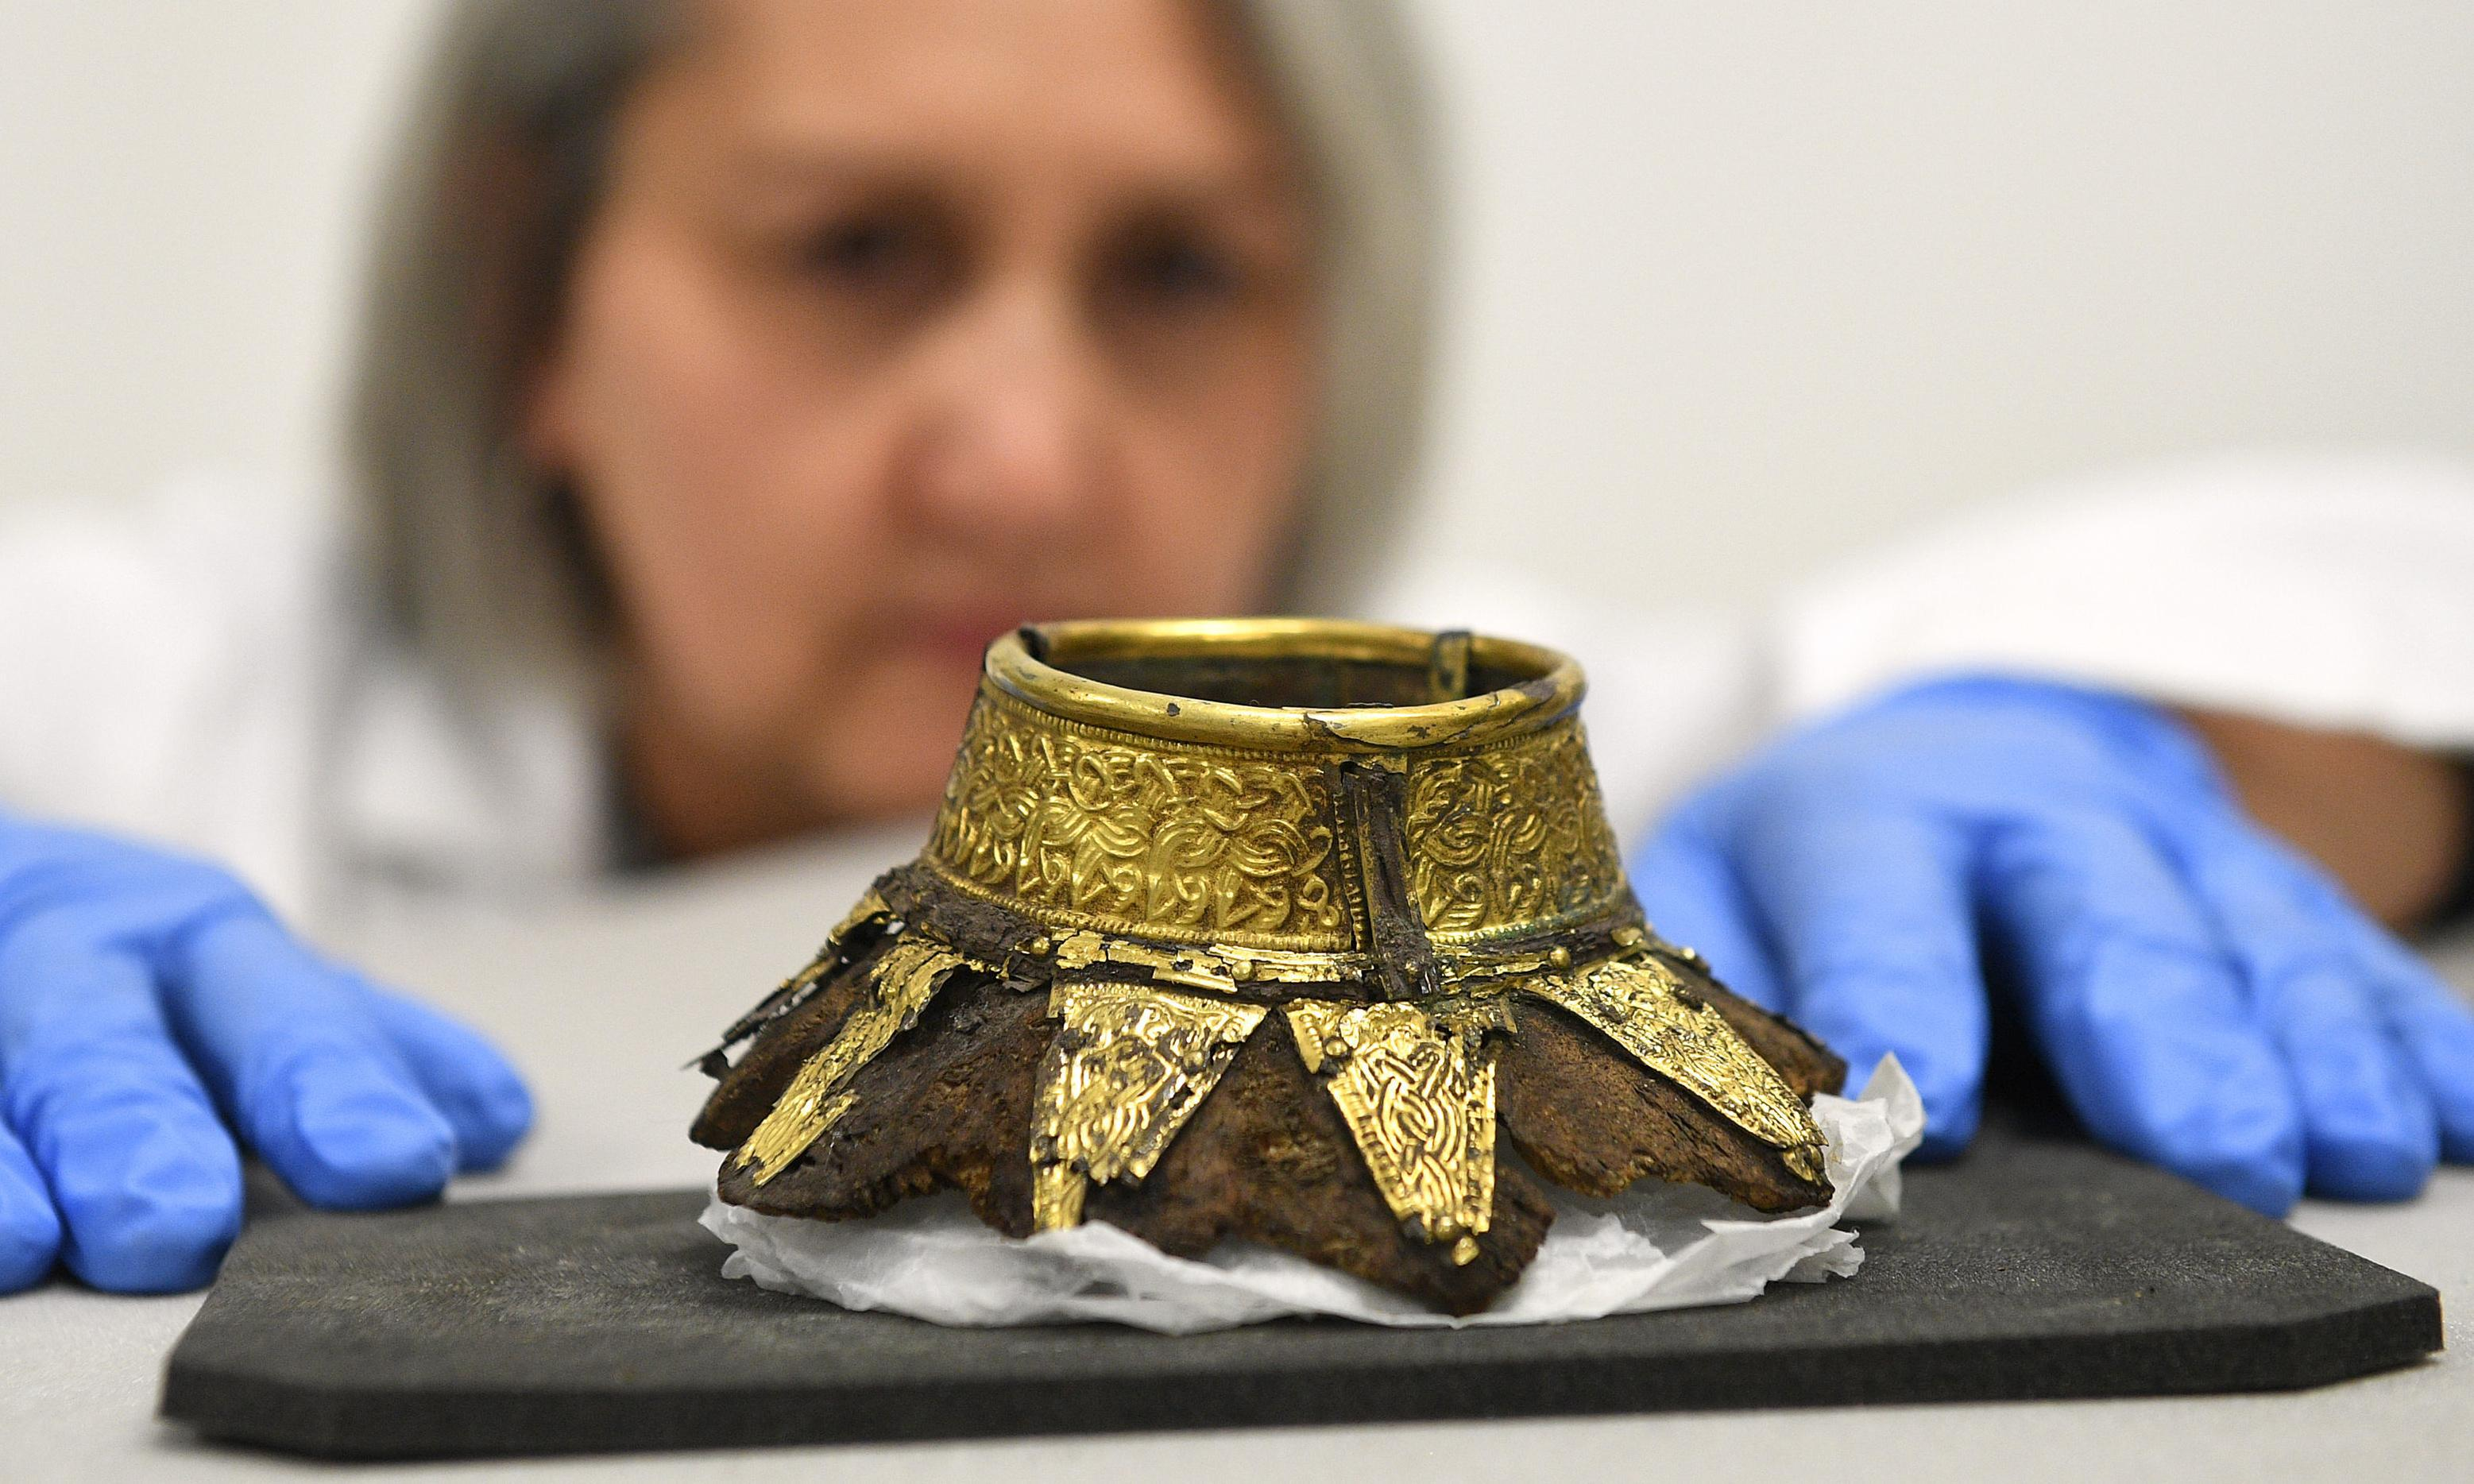 Britain's equivalent to Tutankhamun found in Southend-on-Sea